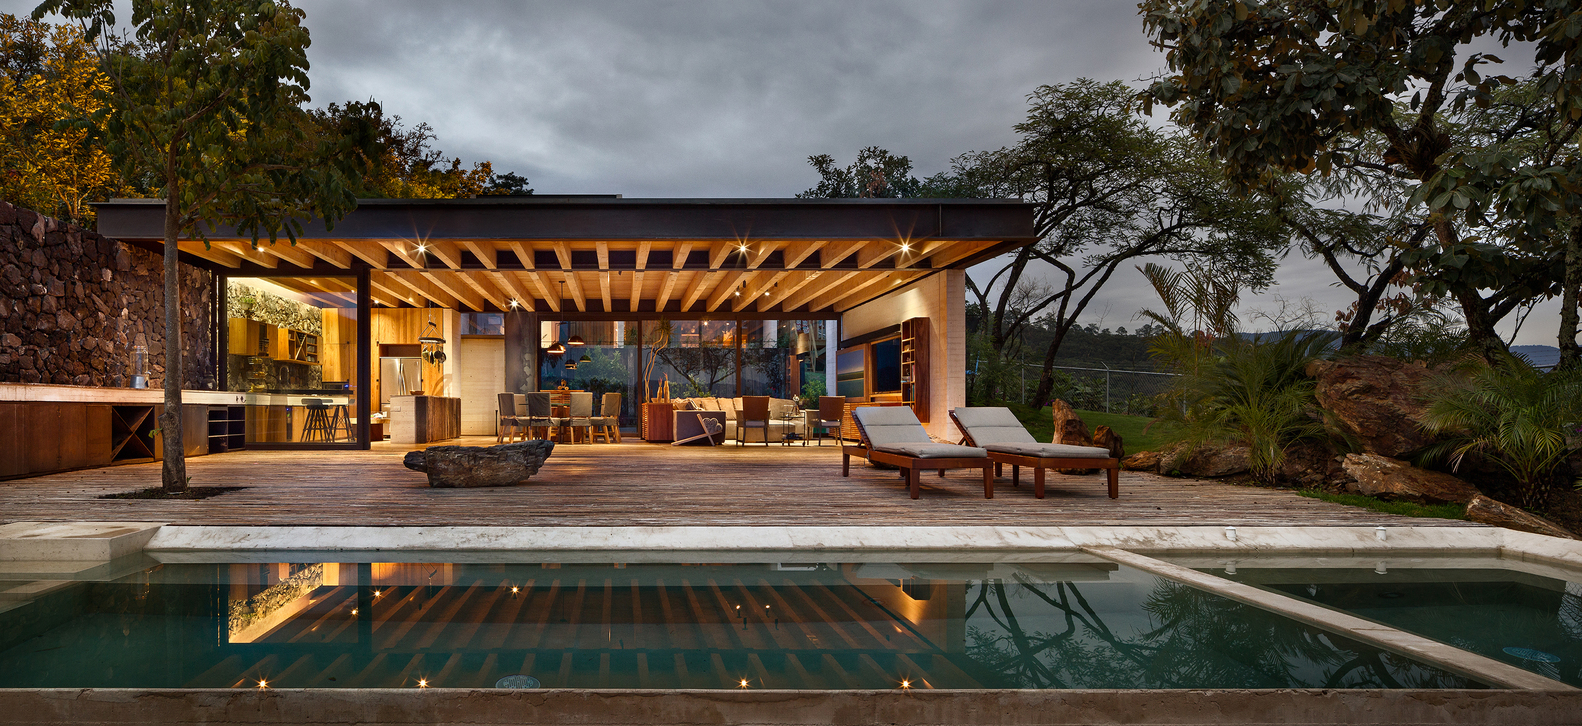 living room sofa designs 2017 inclinable cuir a vendre tucán house by taller héctor barroso in valle de bravo, mexico